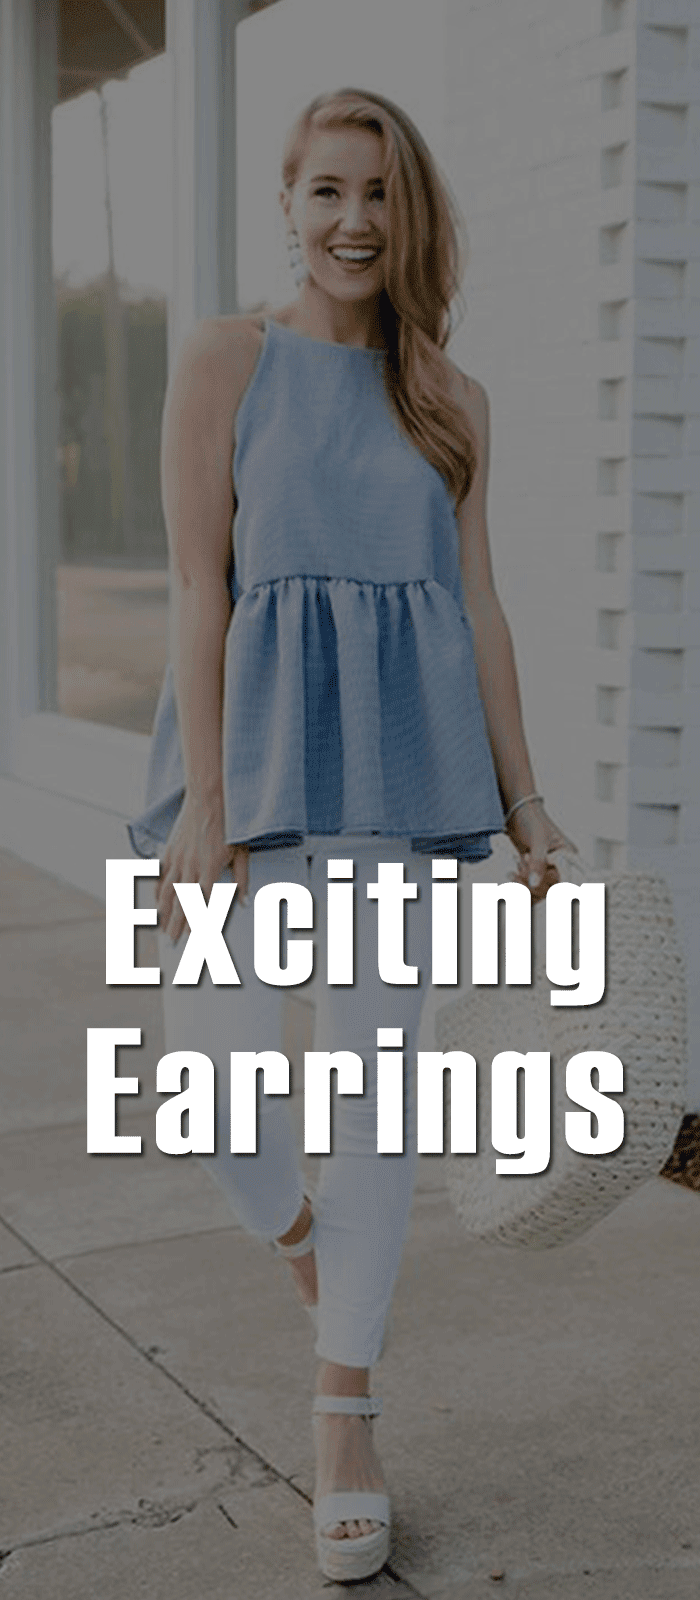 Exciting Earrings